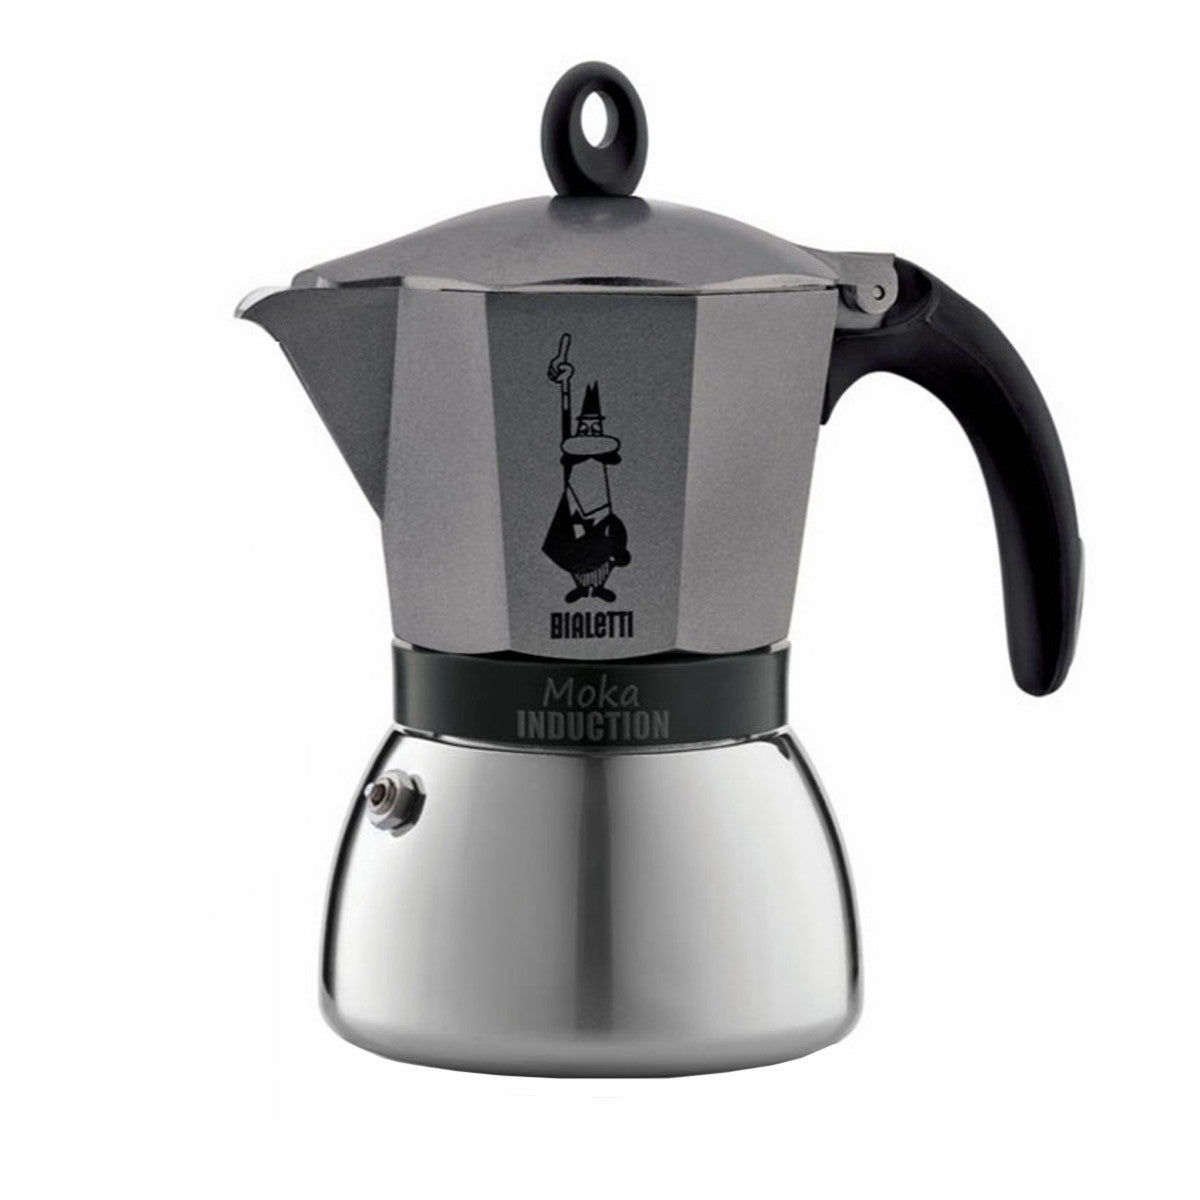 Moka Induction 6 Cup Coffee Maker